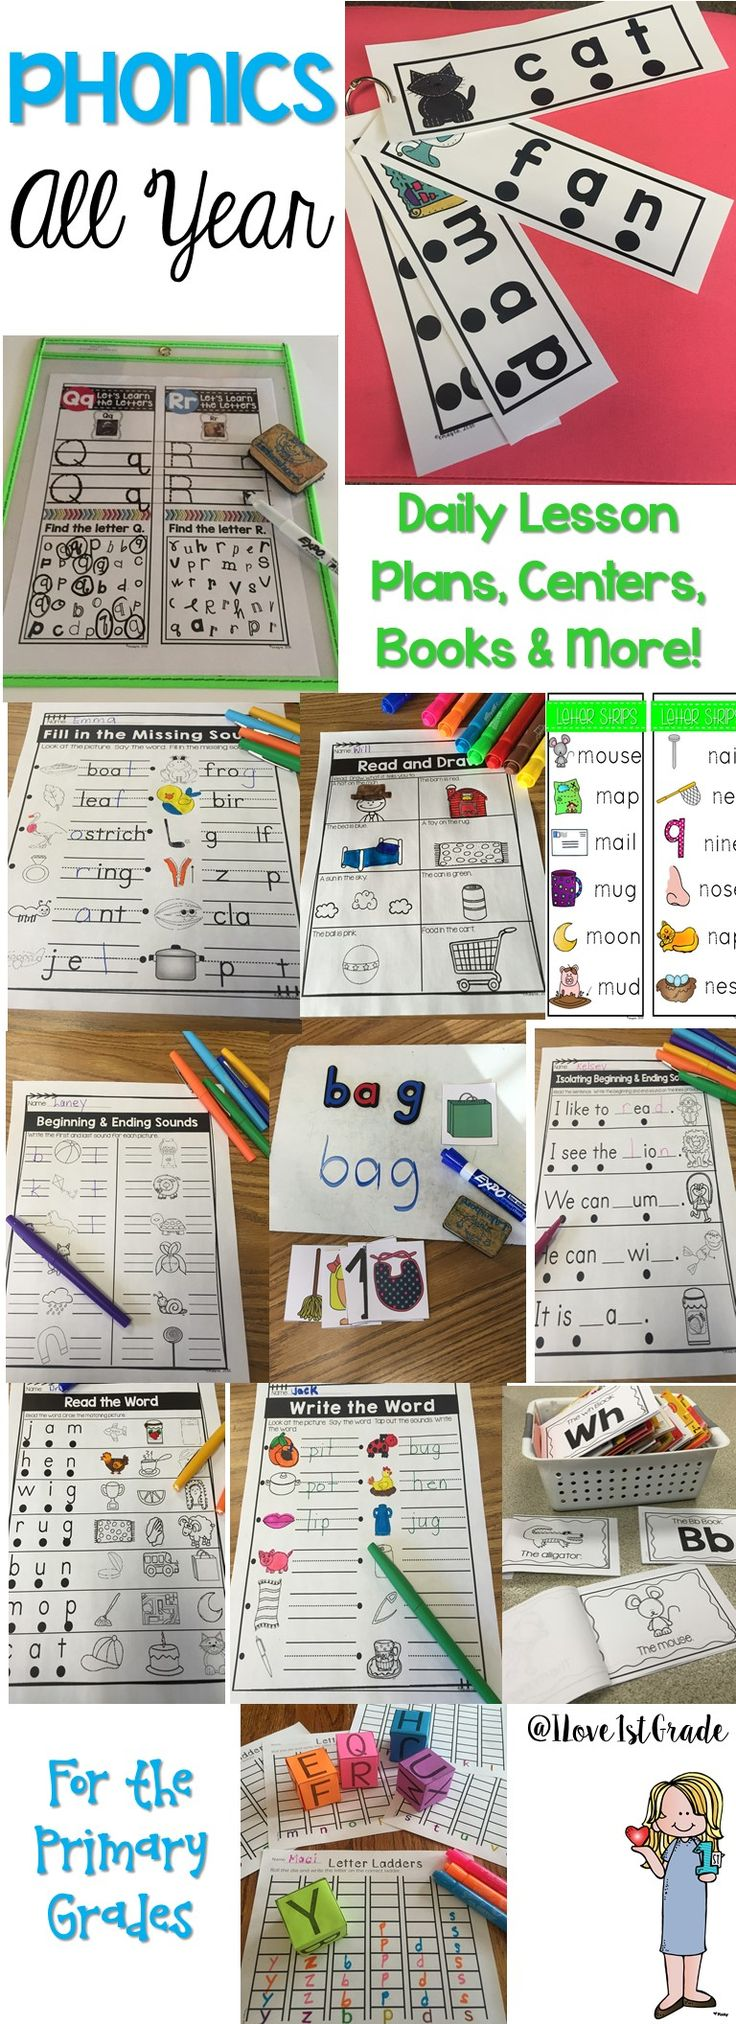 493 pages of phonics and growing! Daily lesson plans, activities, books, worksheets, centers, and ore! This growing bundle is all you need to teach phonics!